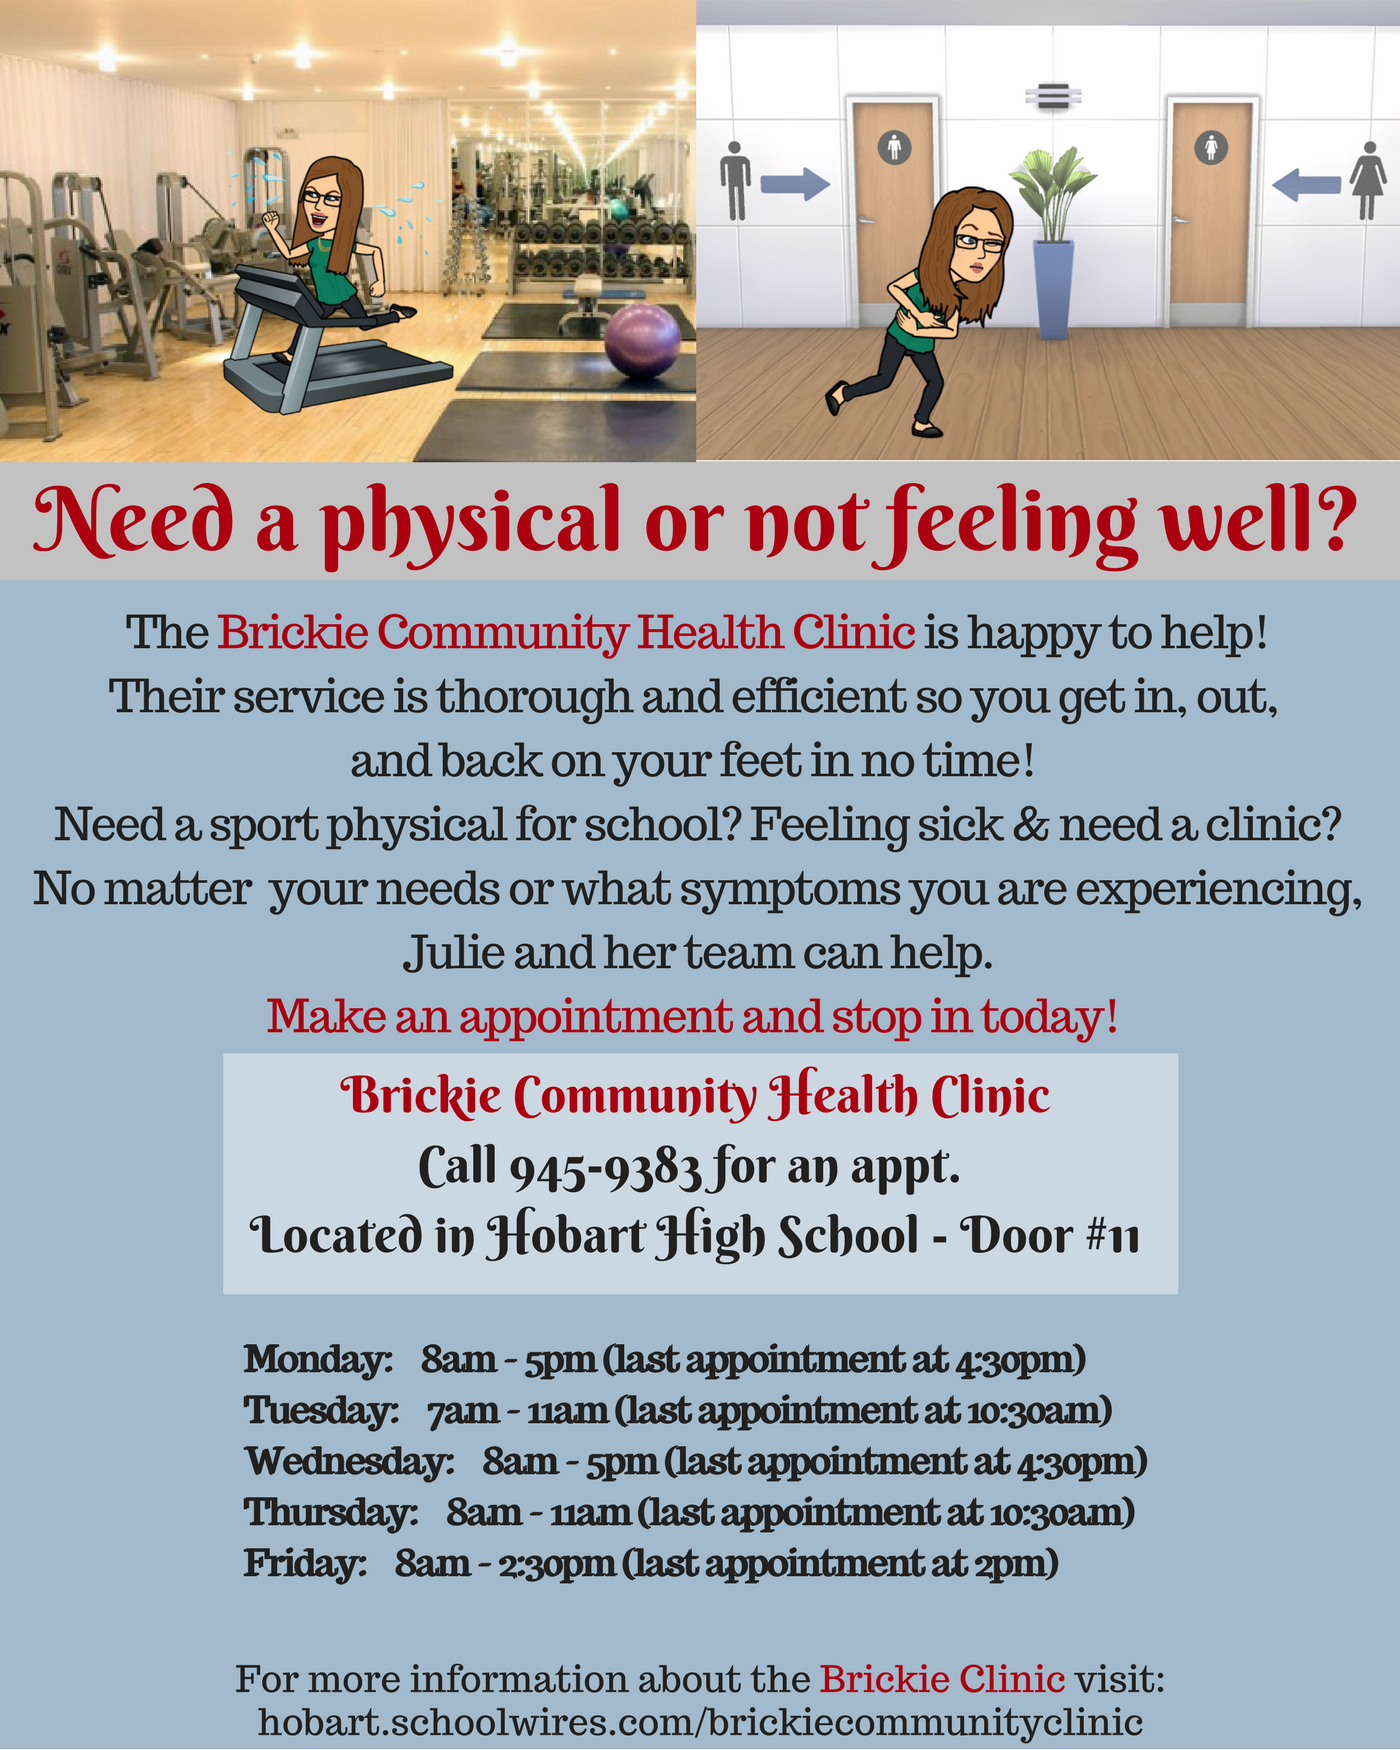 Need a physical or not feeling well? - visit the Brickie Clinic